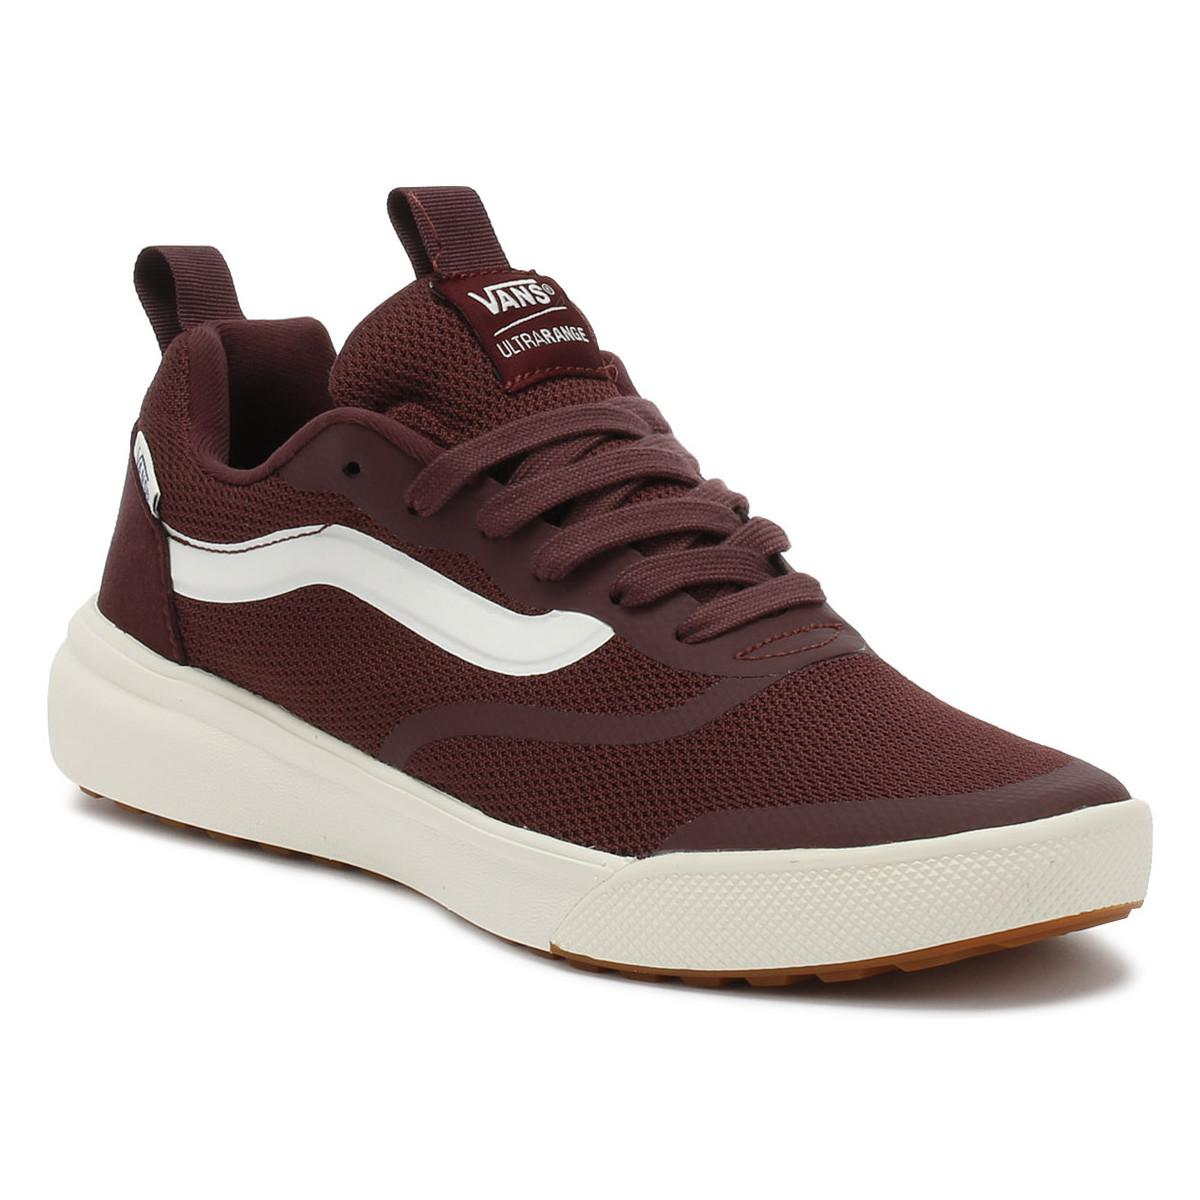 Vans. Catawba Grape Burgundy Ultrarange Trainers Women s Shoes (trainers)  In Red 26cbae86f